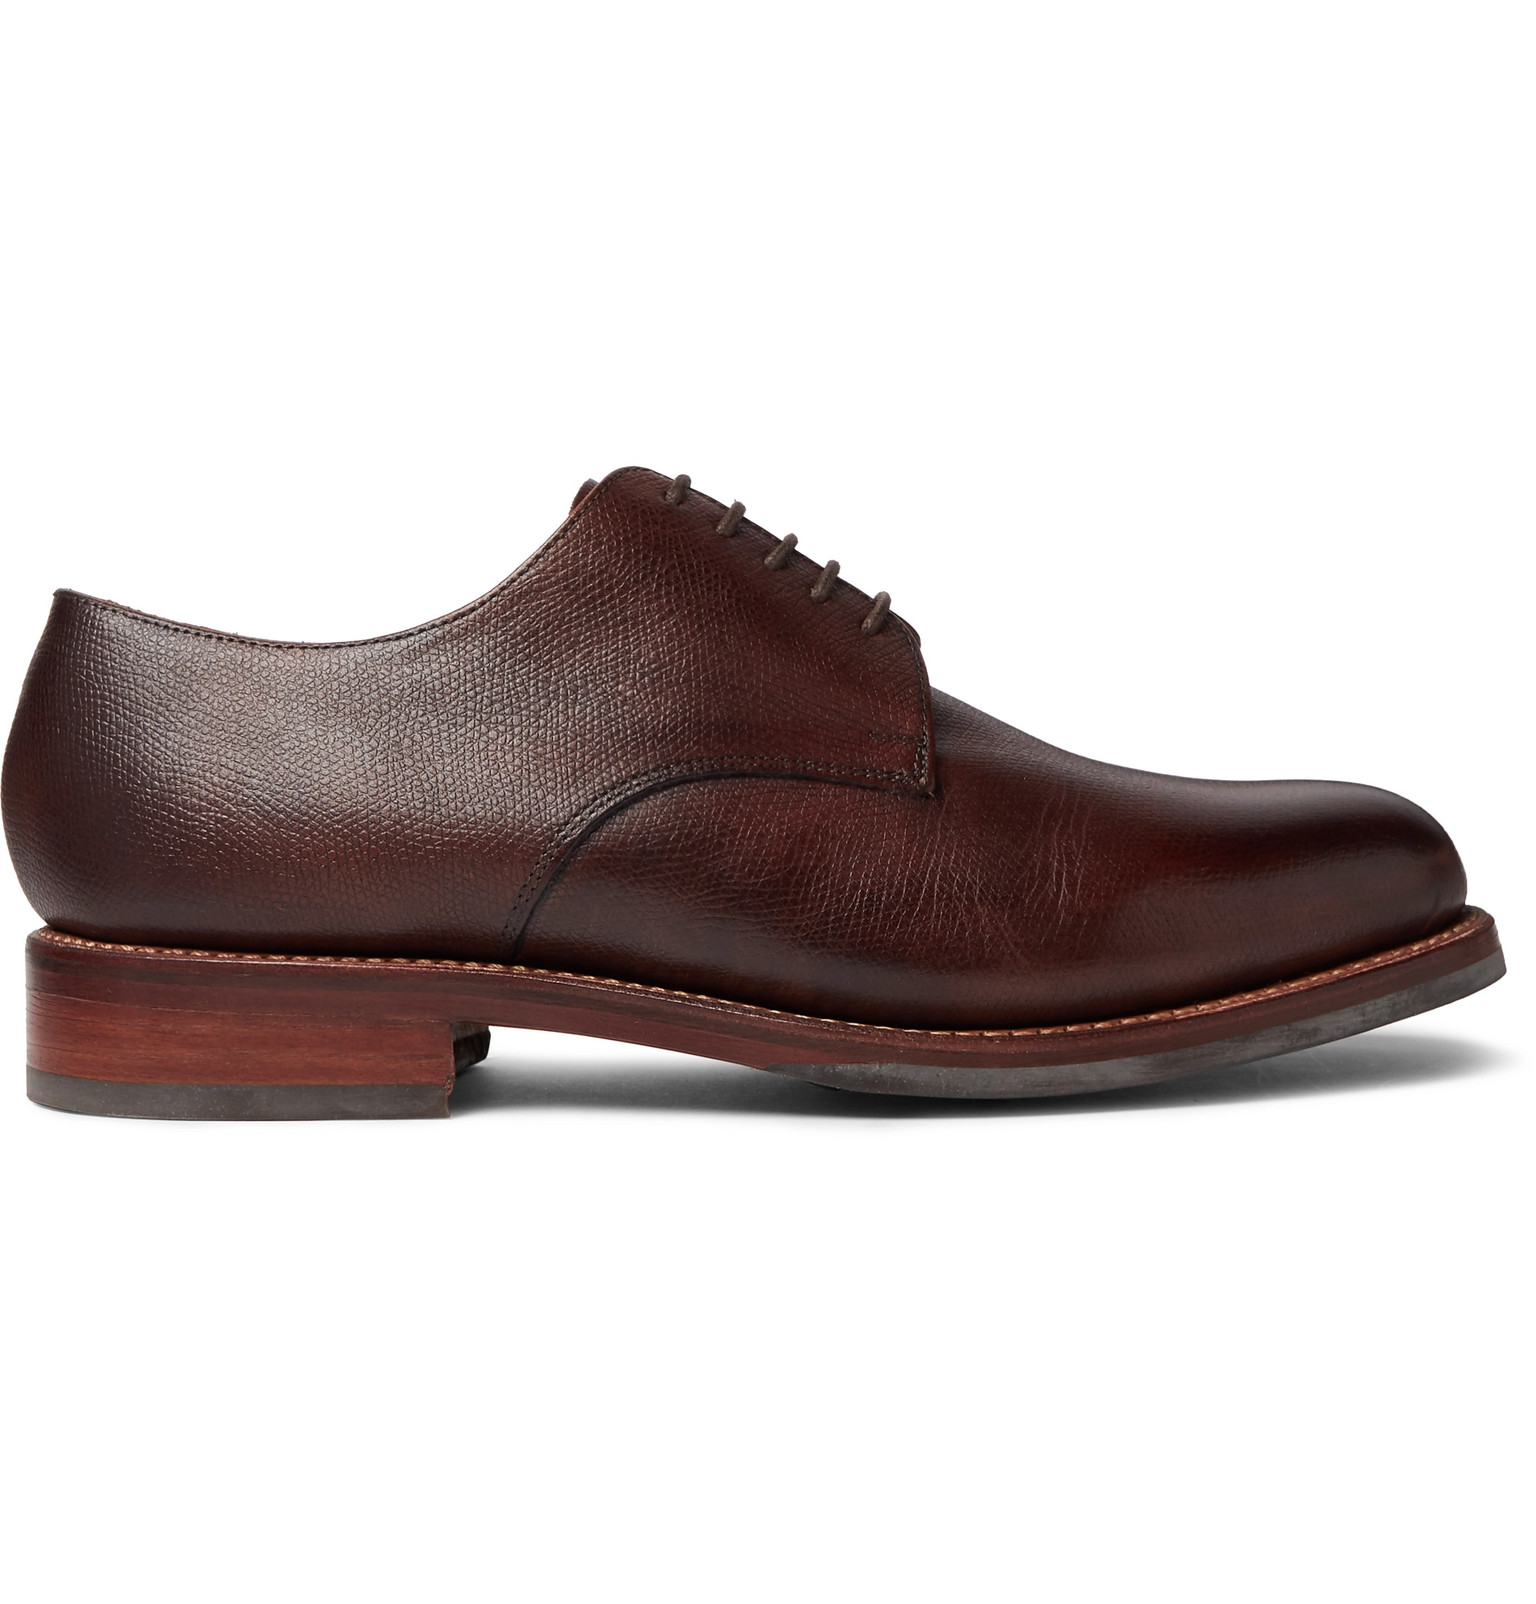 ef79d3dff0a Grenson - Curt Hand-Painted Full-Grain Leather Derby Shoes